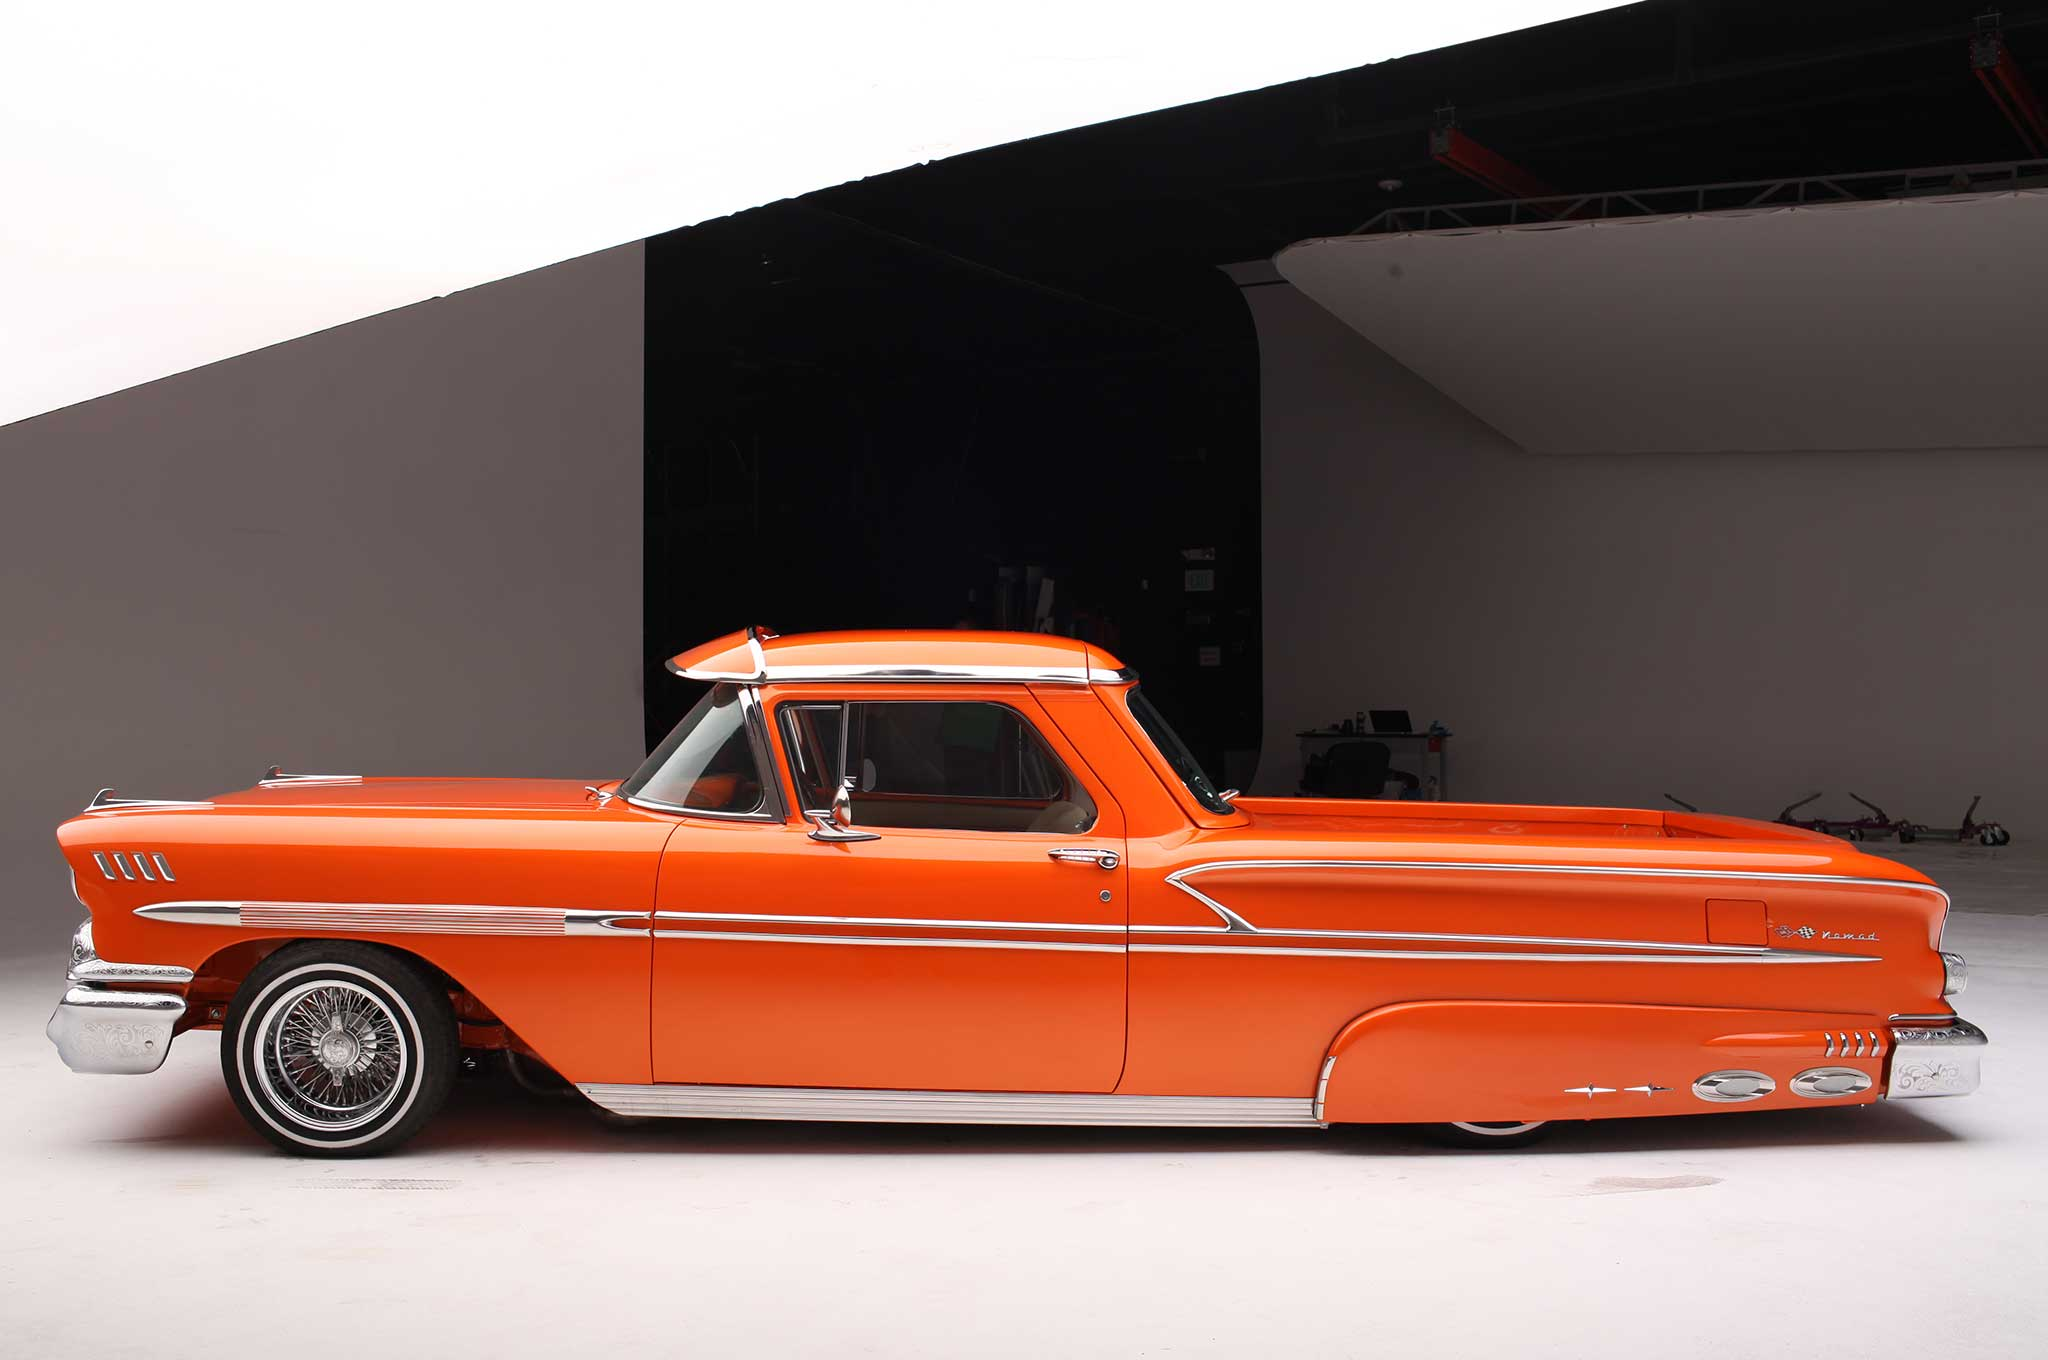 Chevy Bel Air together with Chevrolet Nomad Headlight additionally Chevrolet Corvette furthermore Chevrolet Nomad Rear Window furthermore Front Web. on 2015 chevy nomad